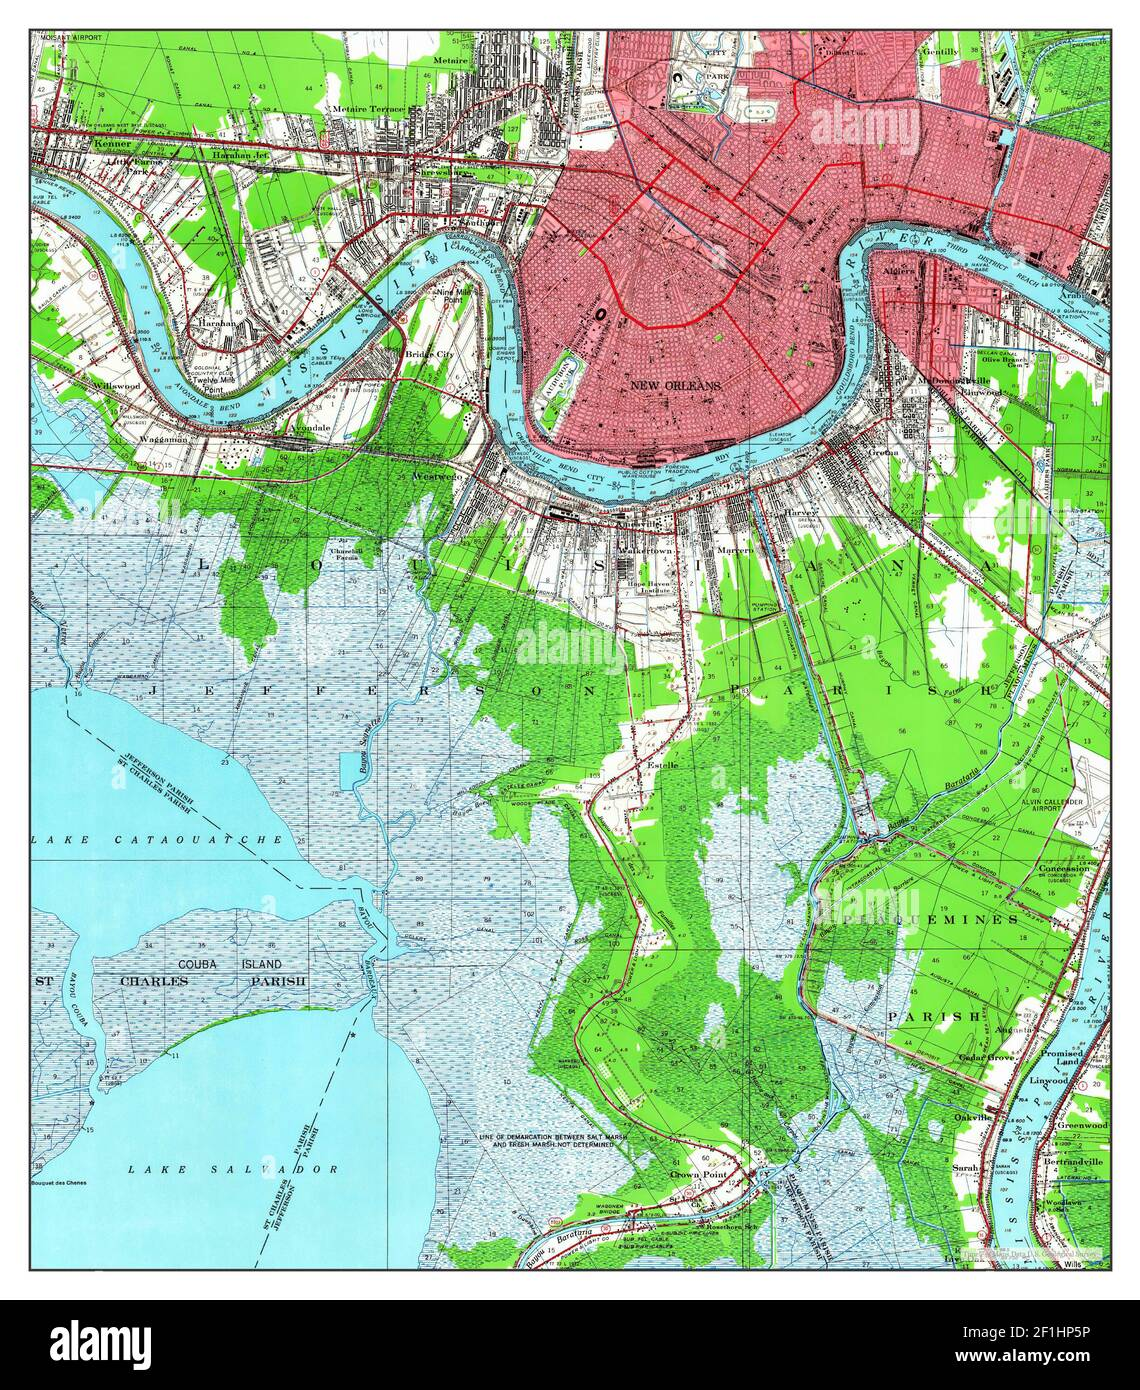 New orleans cbd and downtown map. New Orleans Louisiana Map 1950 1 62500 United States Of America By Timeless Maps Data U S Geological Survey Stock Photo Alamy